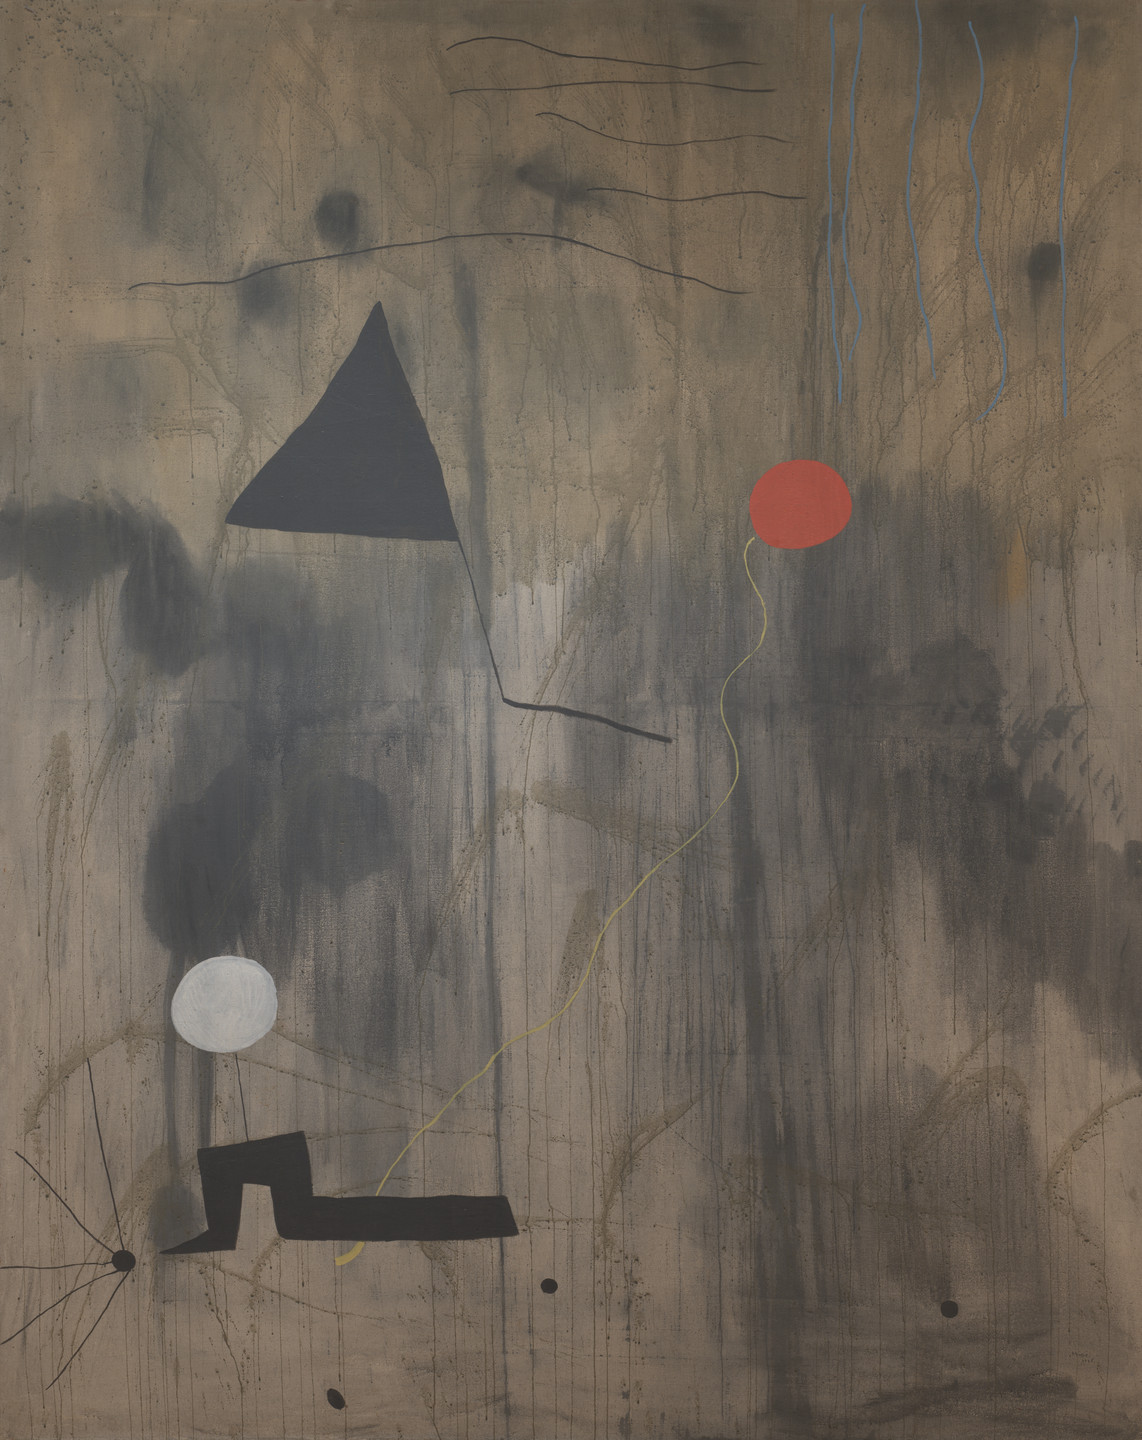 Joan Miró. The Birth of the World. Montroig, late summer-fall 1925